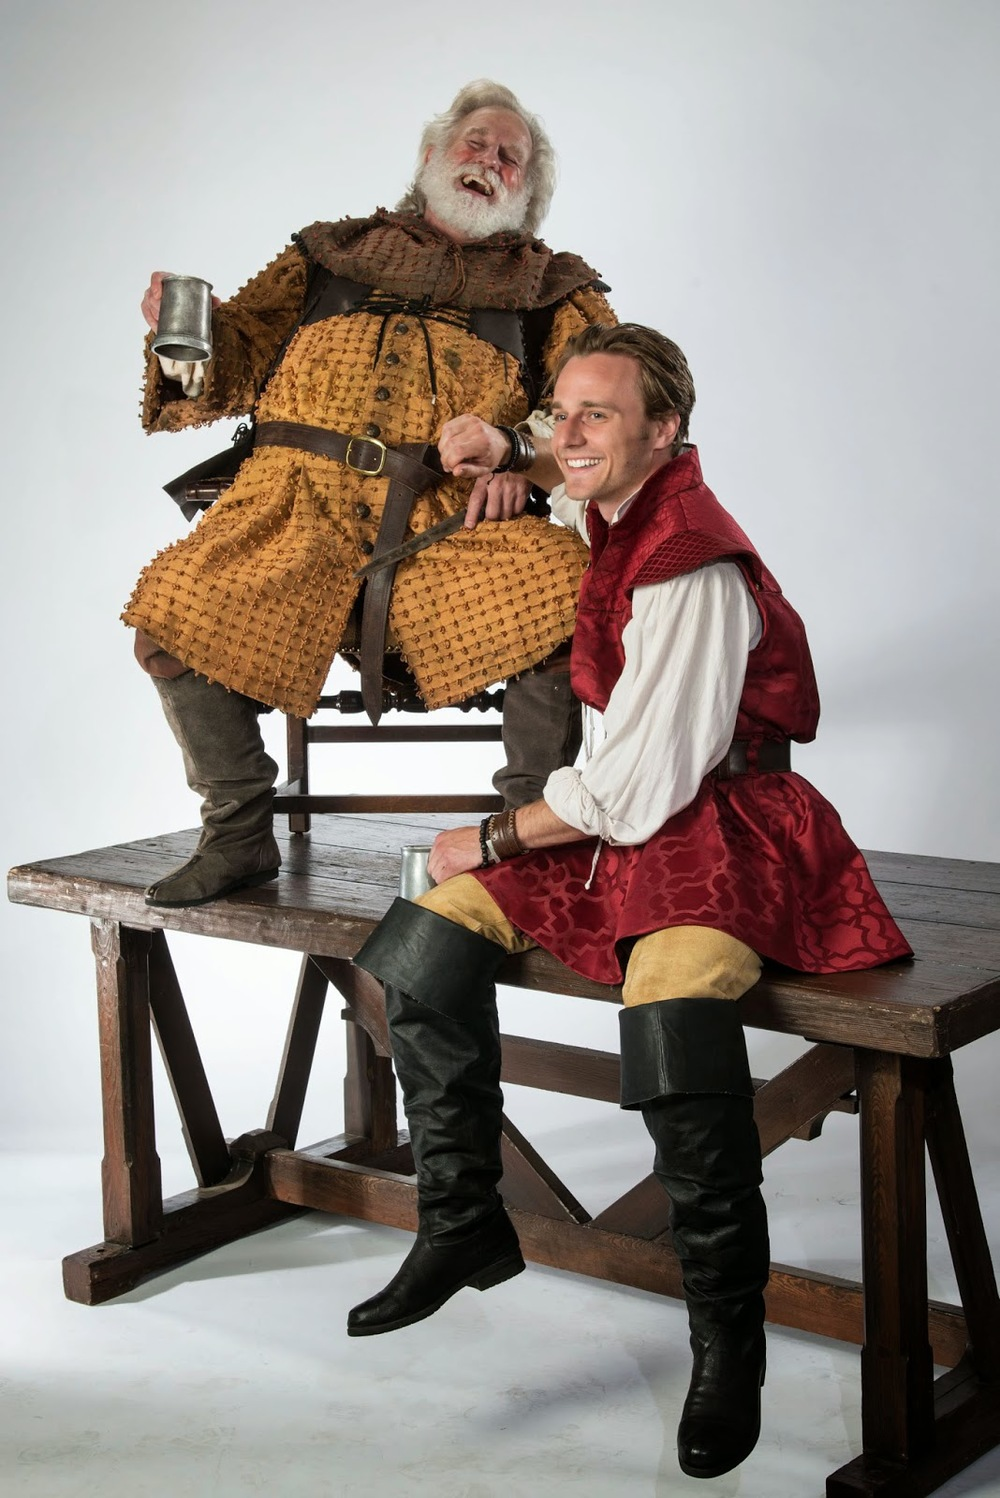 Woronicz as Falstaff, Ashdown as Prince Hal